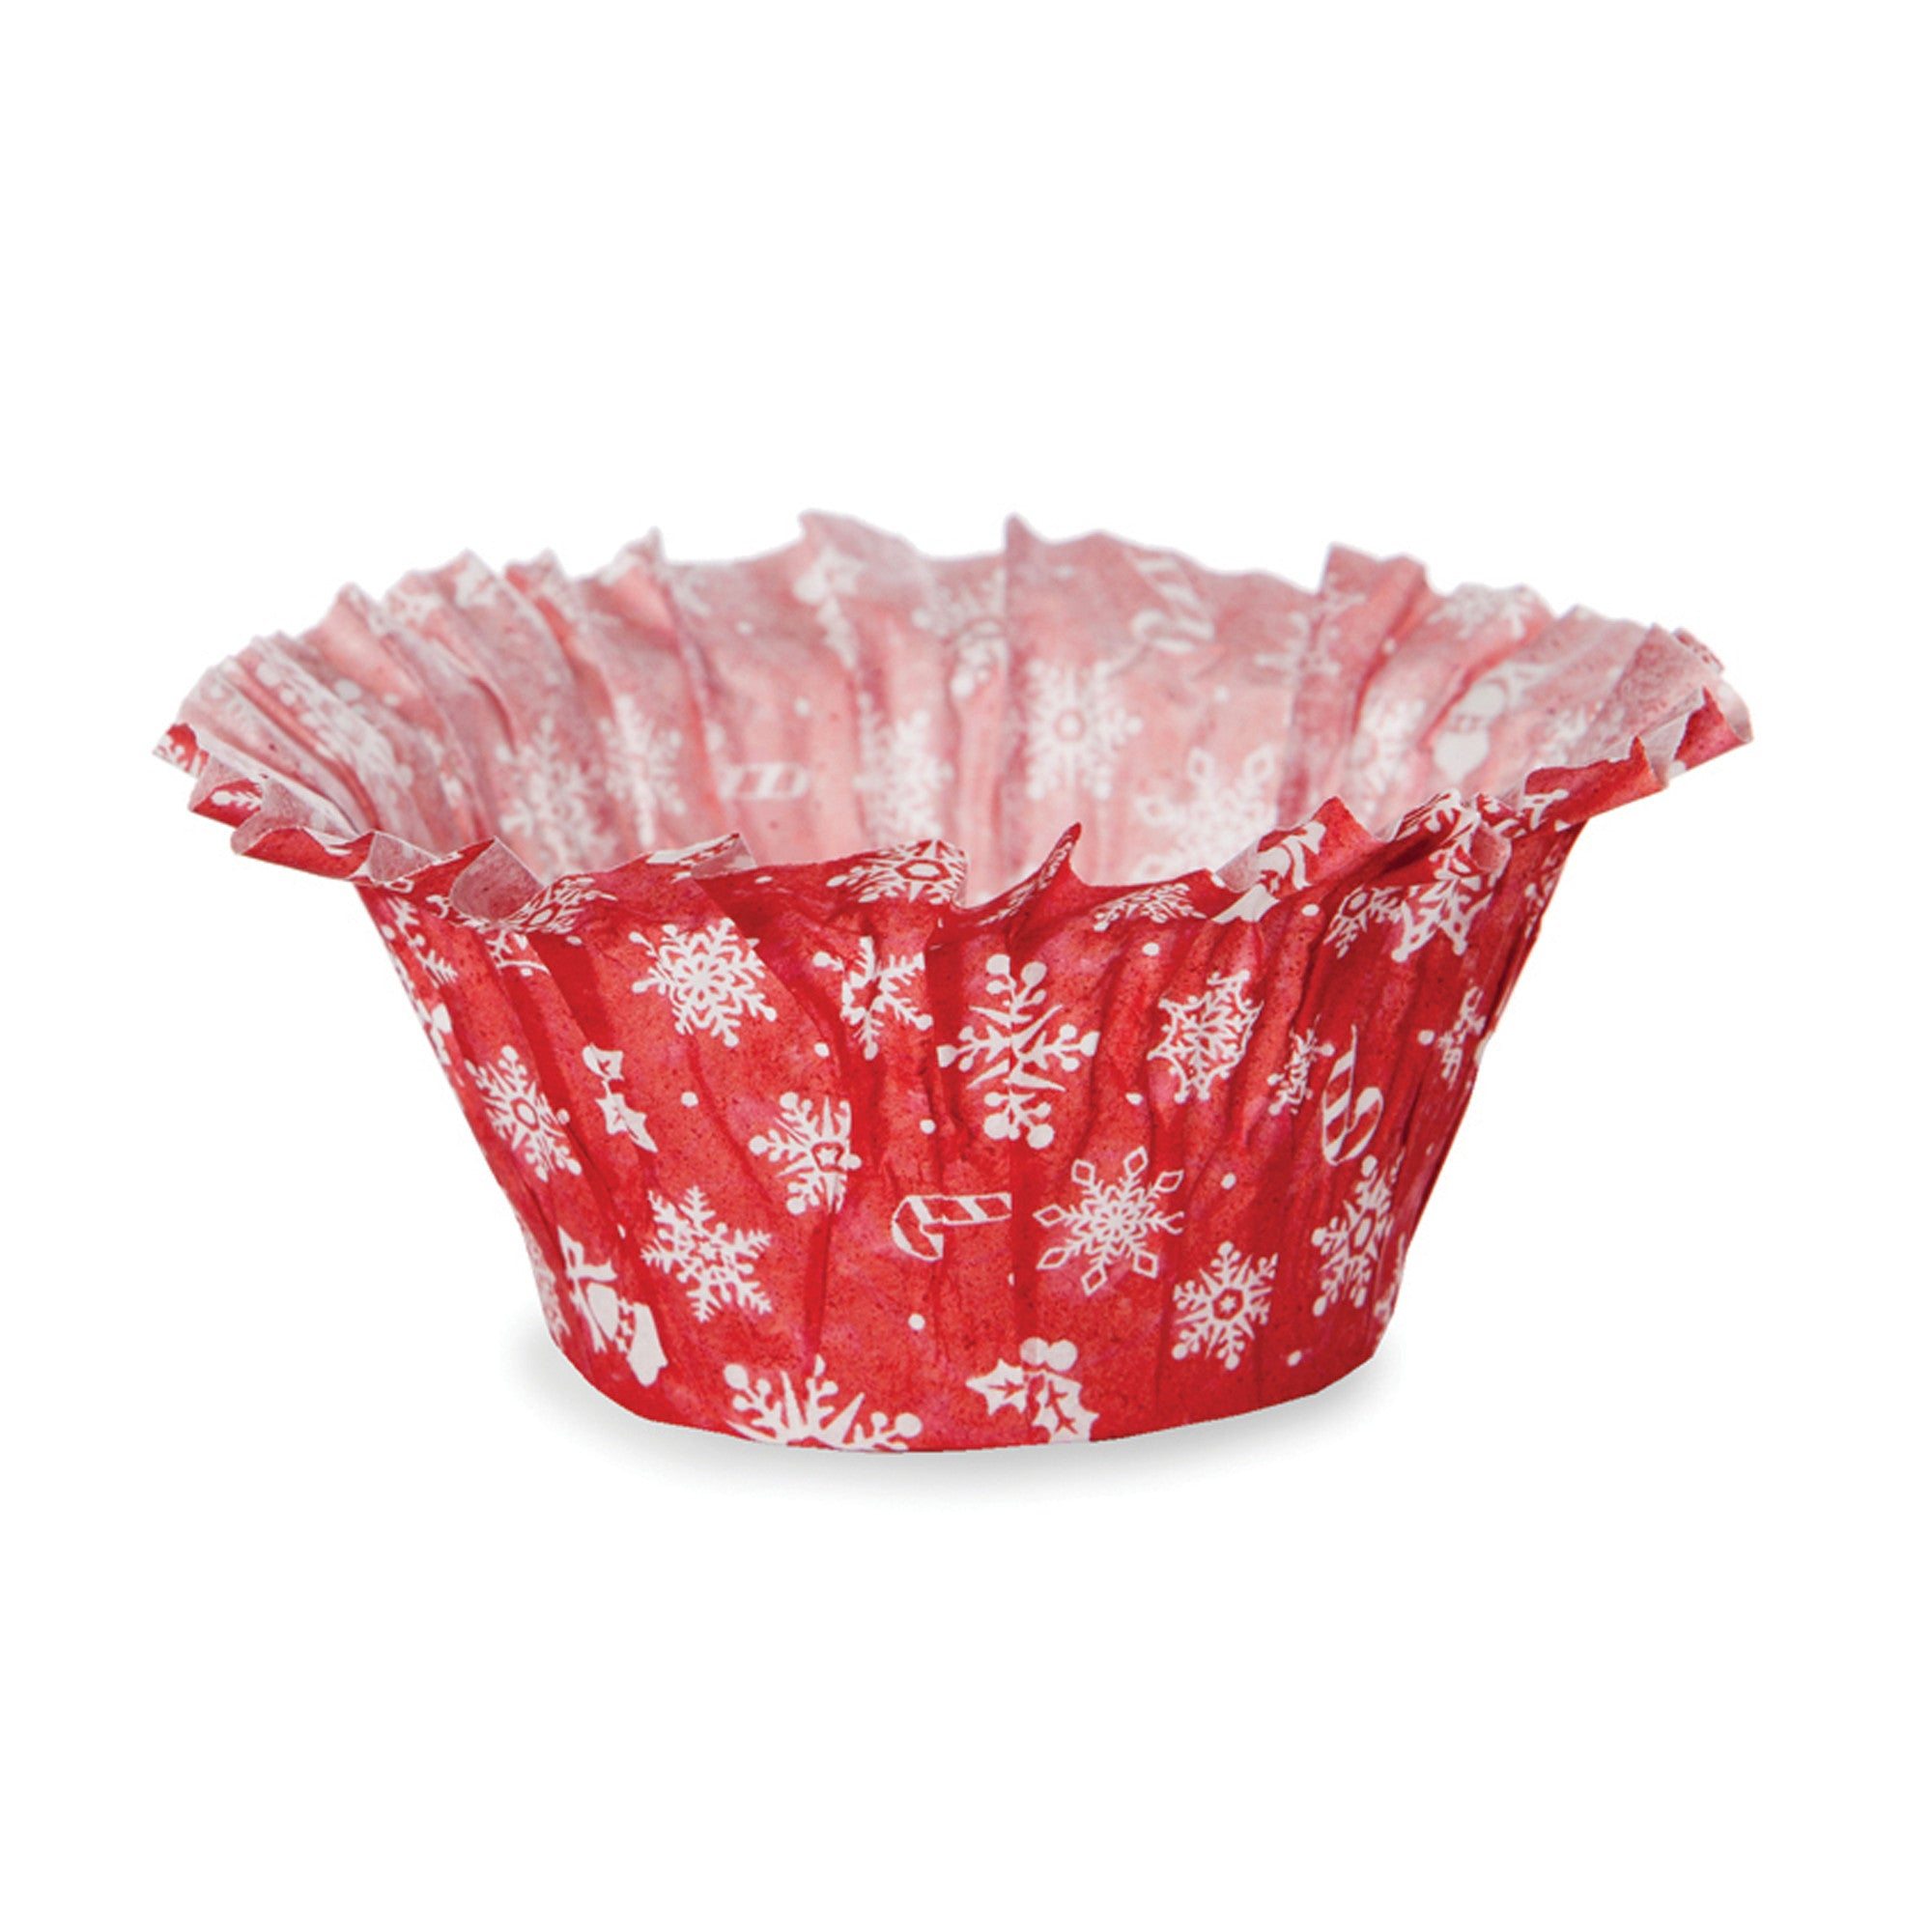 Muffin Baskets, TG0045 - Welcome Home Brands